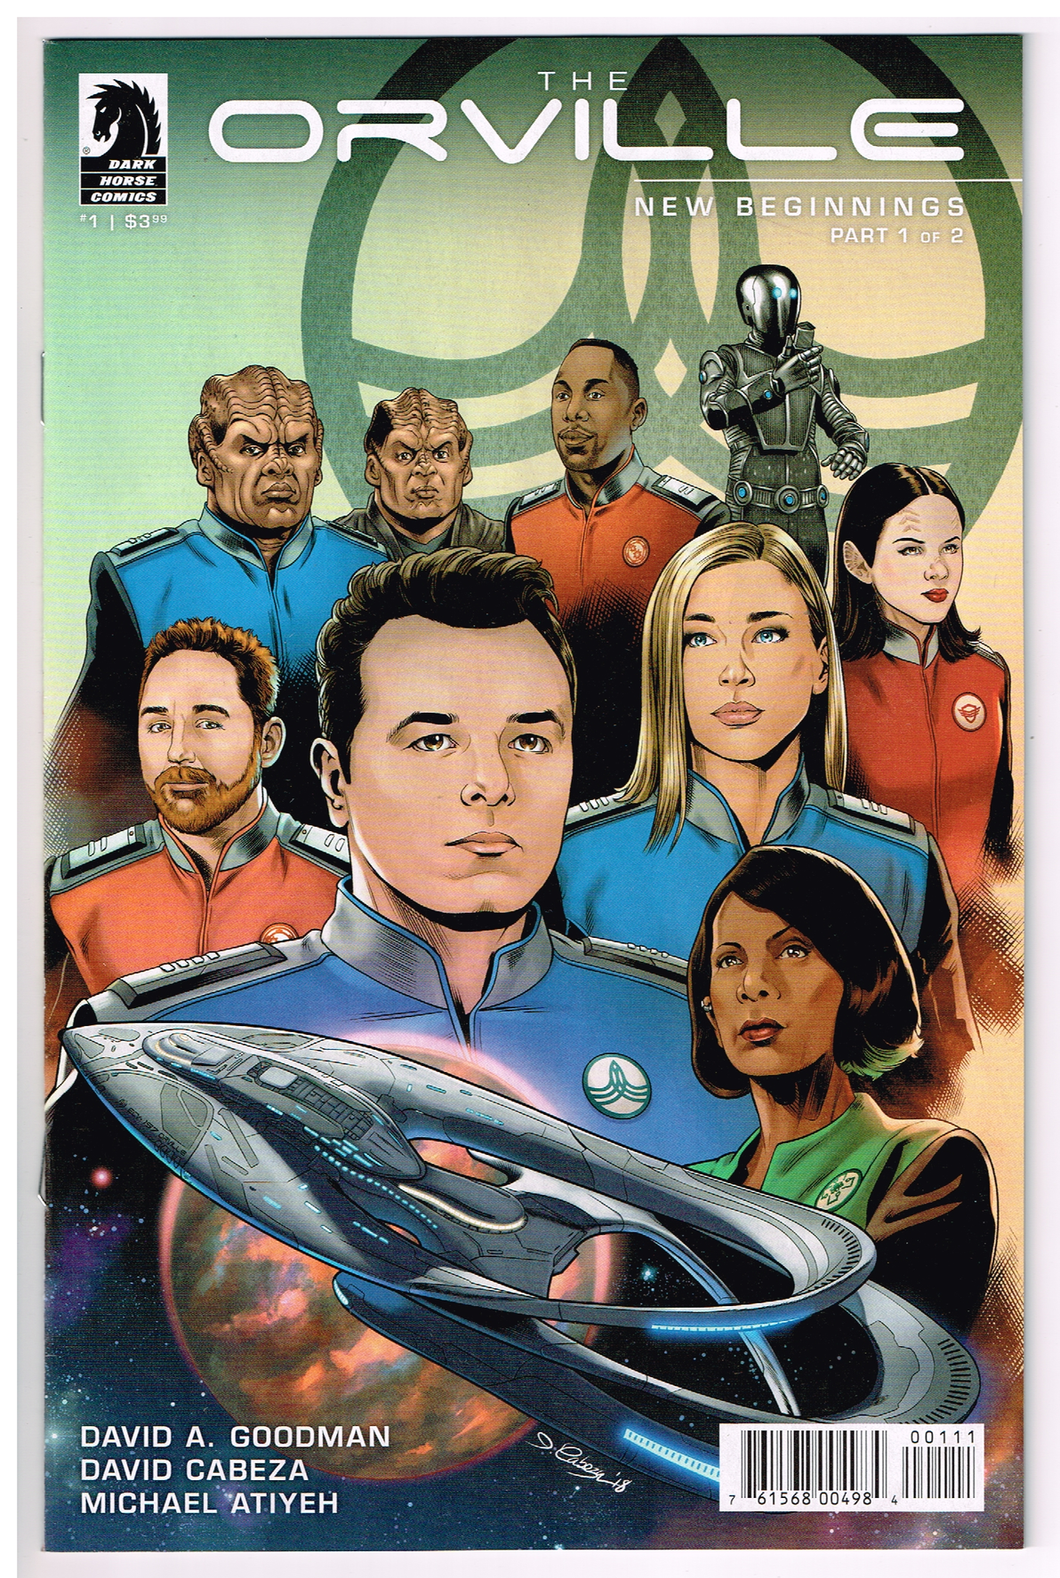 The Orville # 1